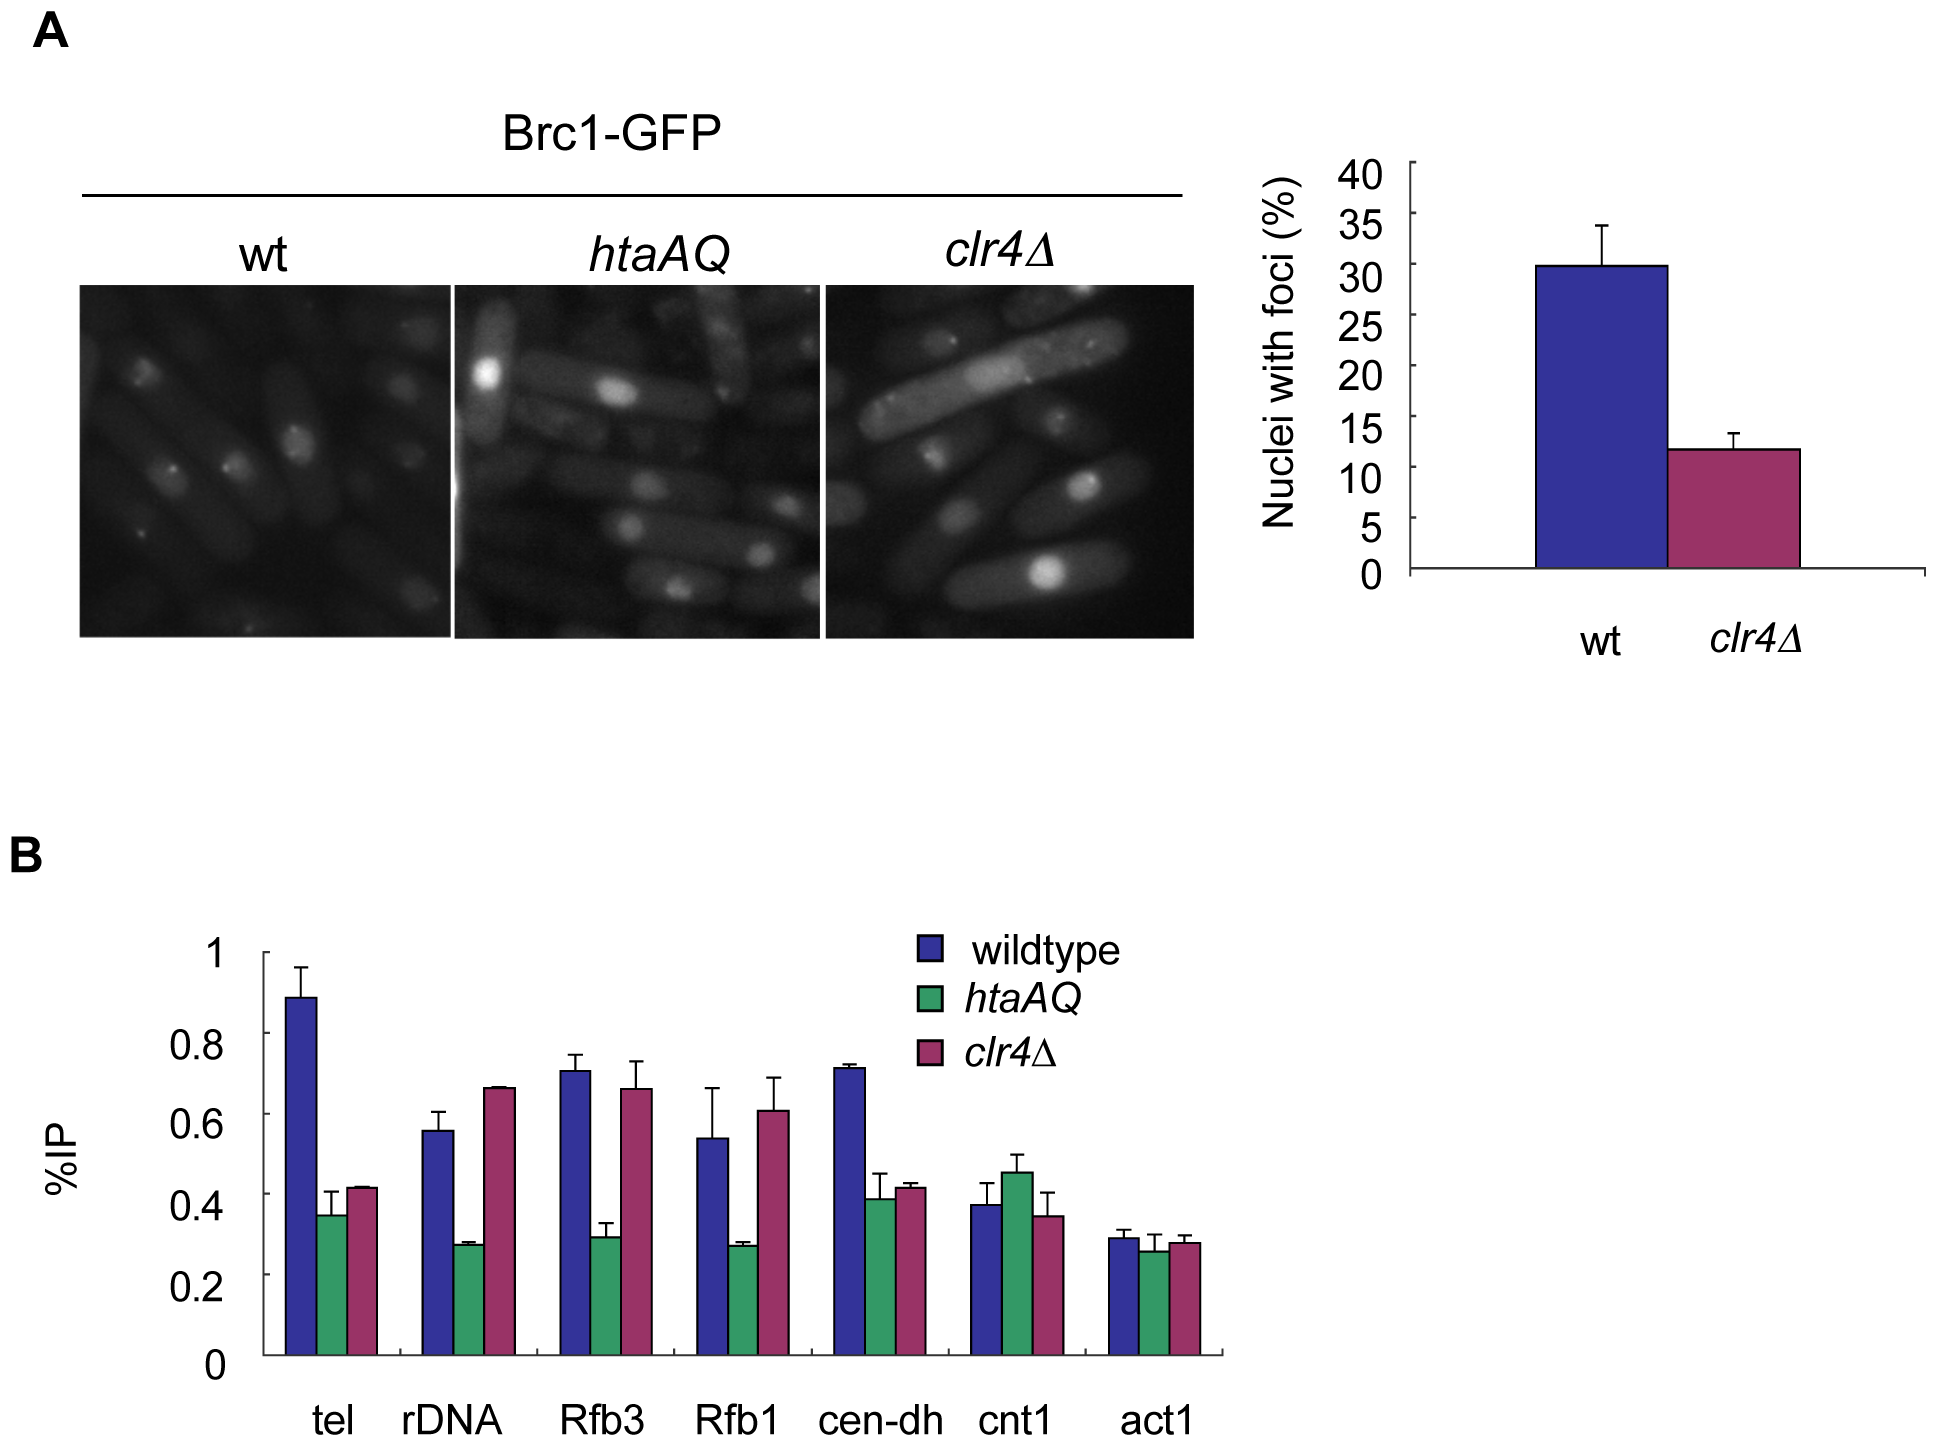 Brc1 recruitment to γH2A sites is partially dependent on Clr4.